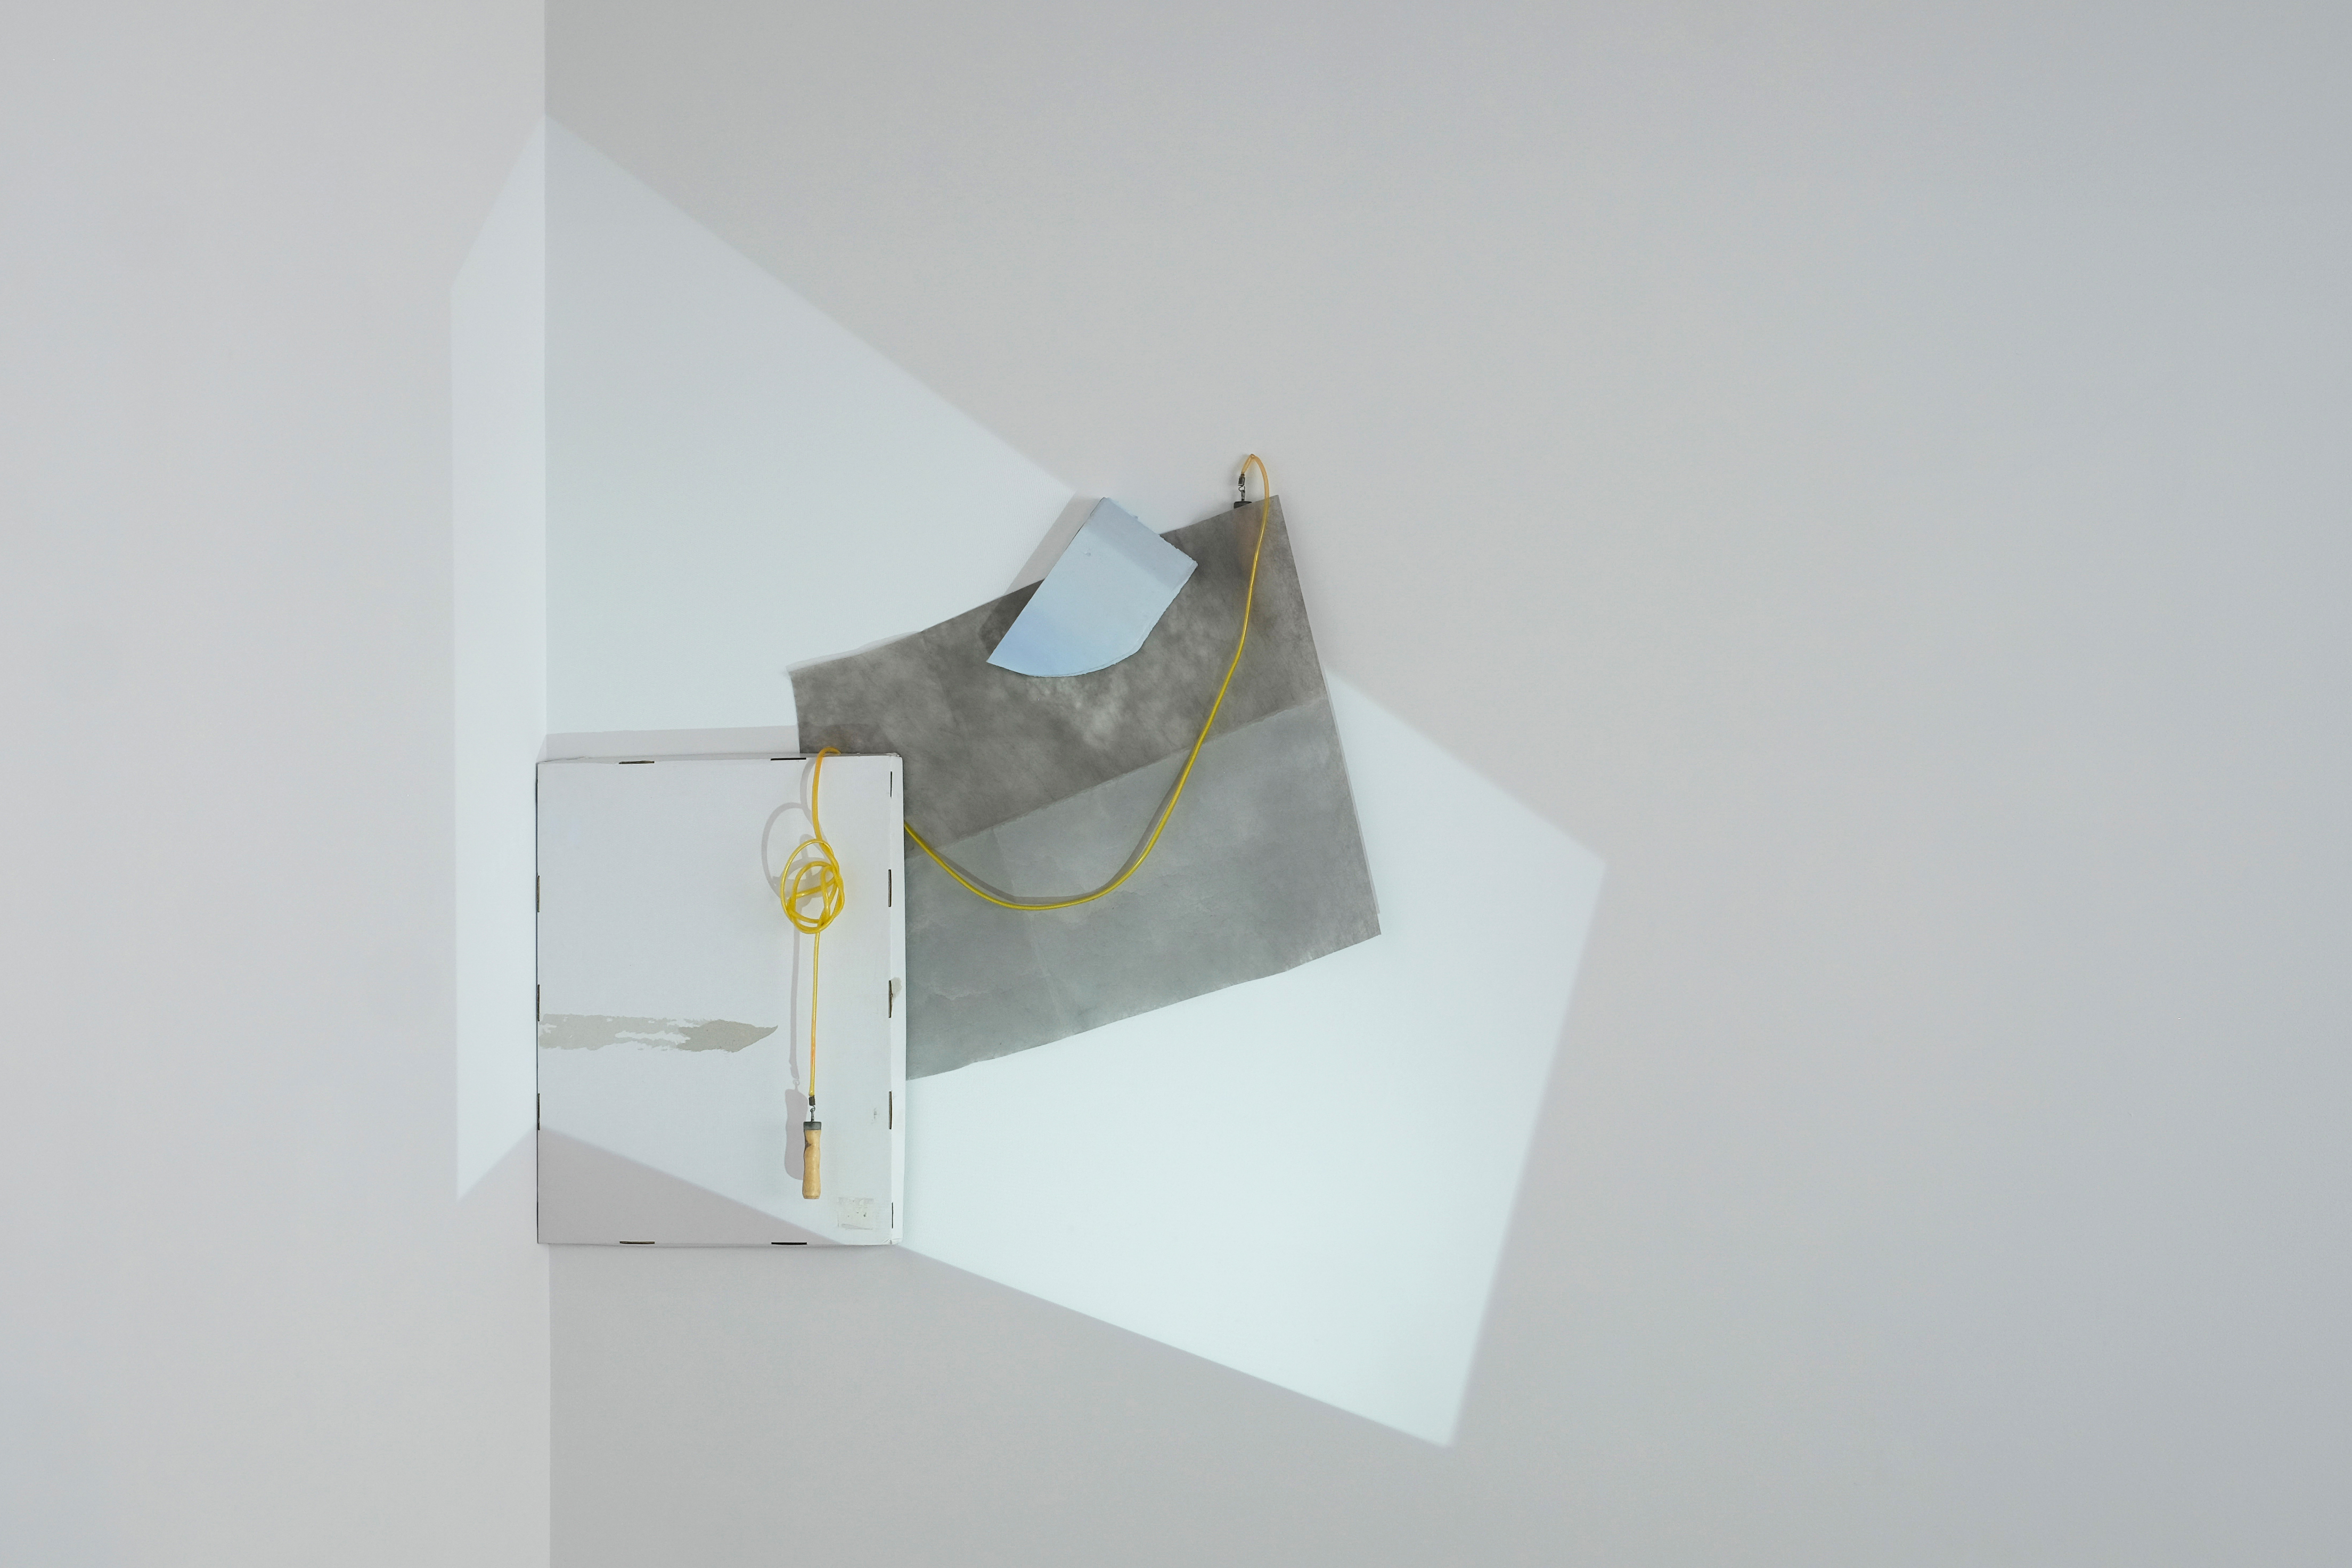 Alexine McLeod - Composition with Projection IX, Dimensions variable; 67 x 55 x 5 inches, 2016